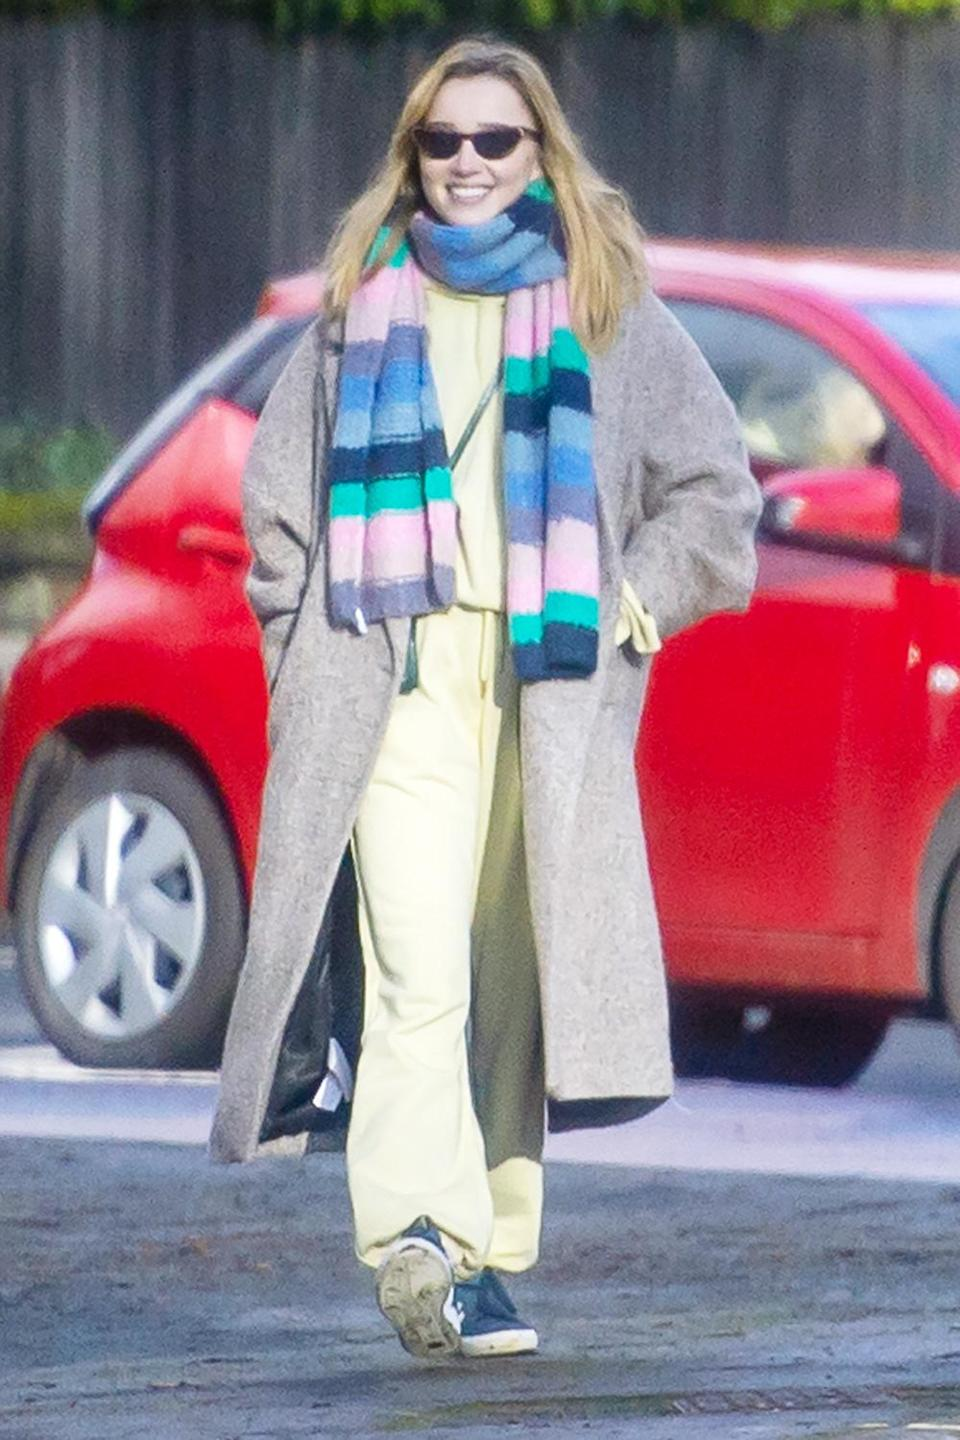 <p><em>Bridgerton</em> star Phoebe Dynevor steps out on a sunny day in Manchester with her mom and sister.</p>